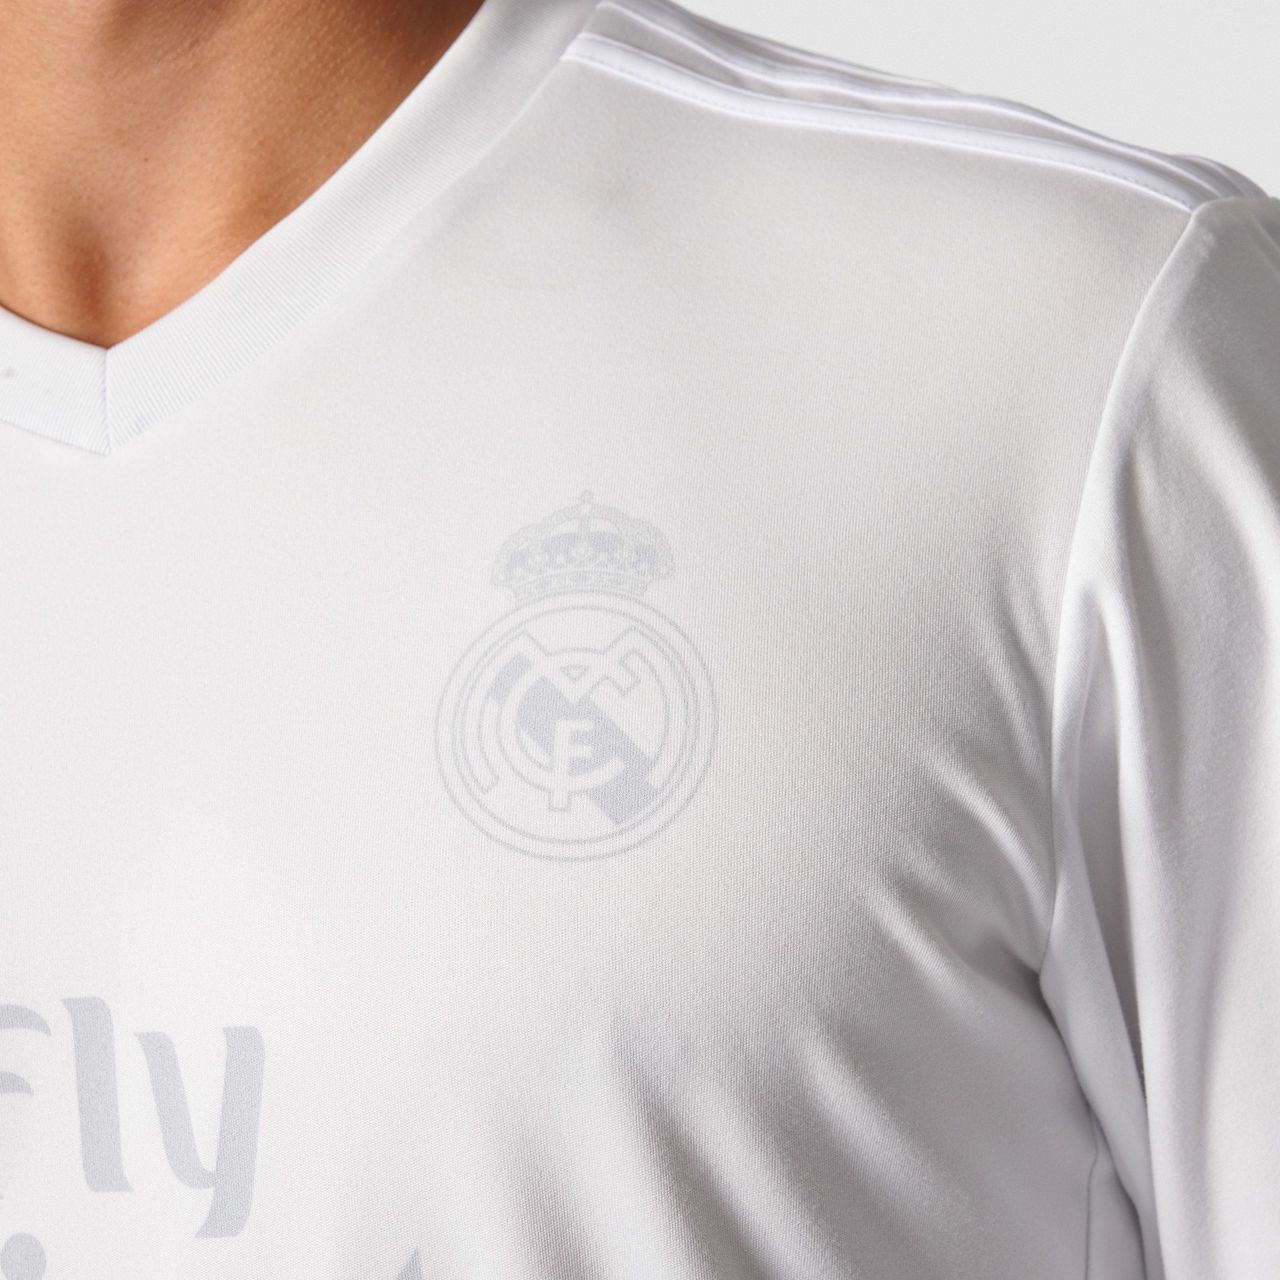 e4c55910a3b ... Click to enlarge image real madrid 2016 2017 adidas parley kit f.jpg ...